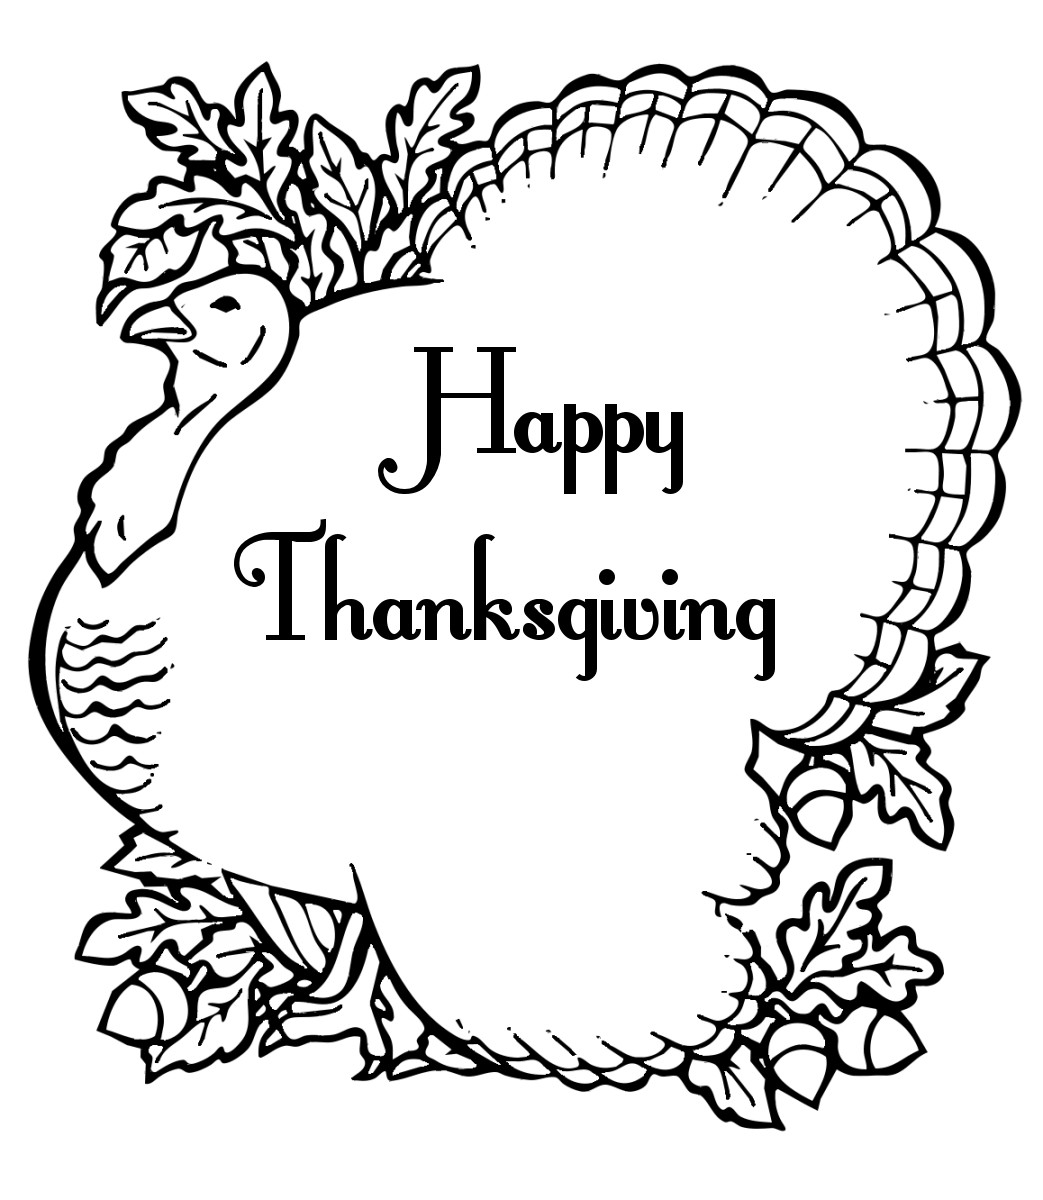 Thanksgiving Turkey Coloring Pages  Free Printable Thanksgiving Coloring Pages For Kids